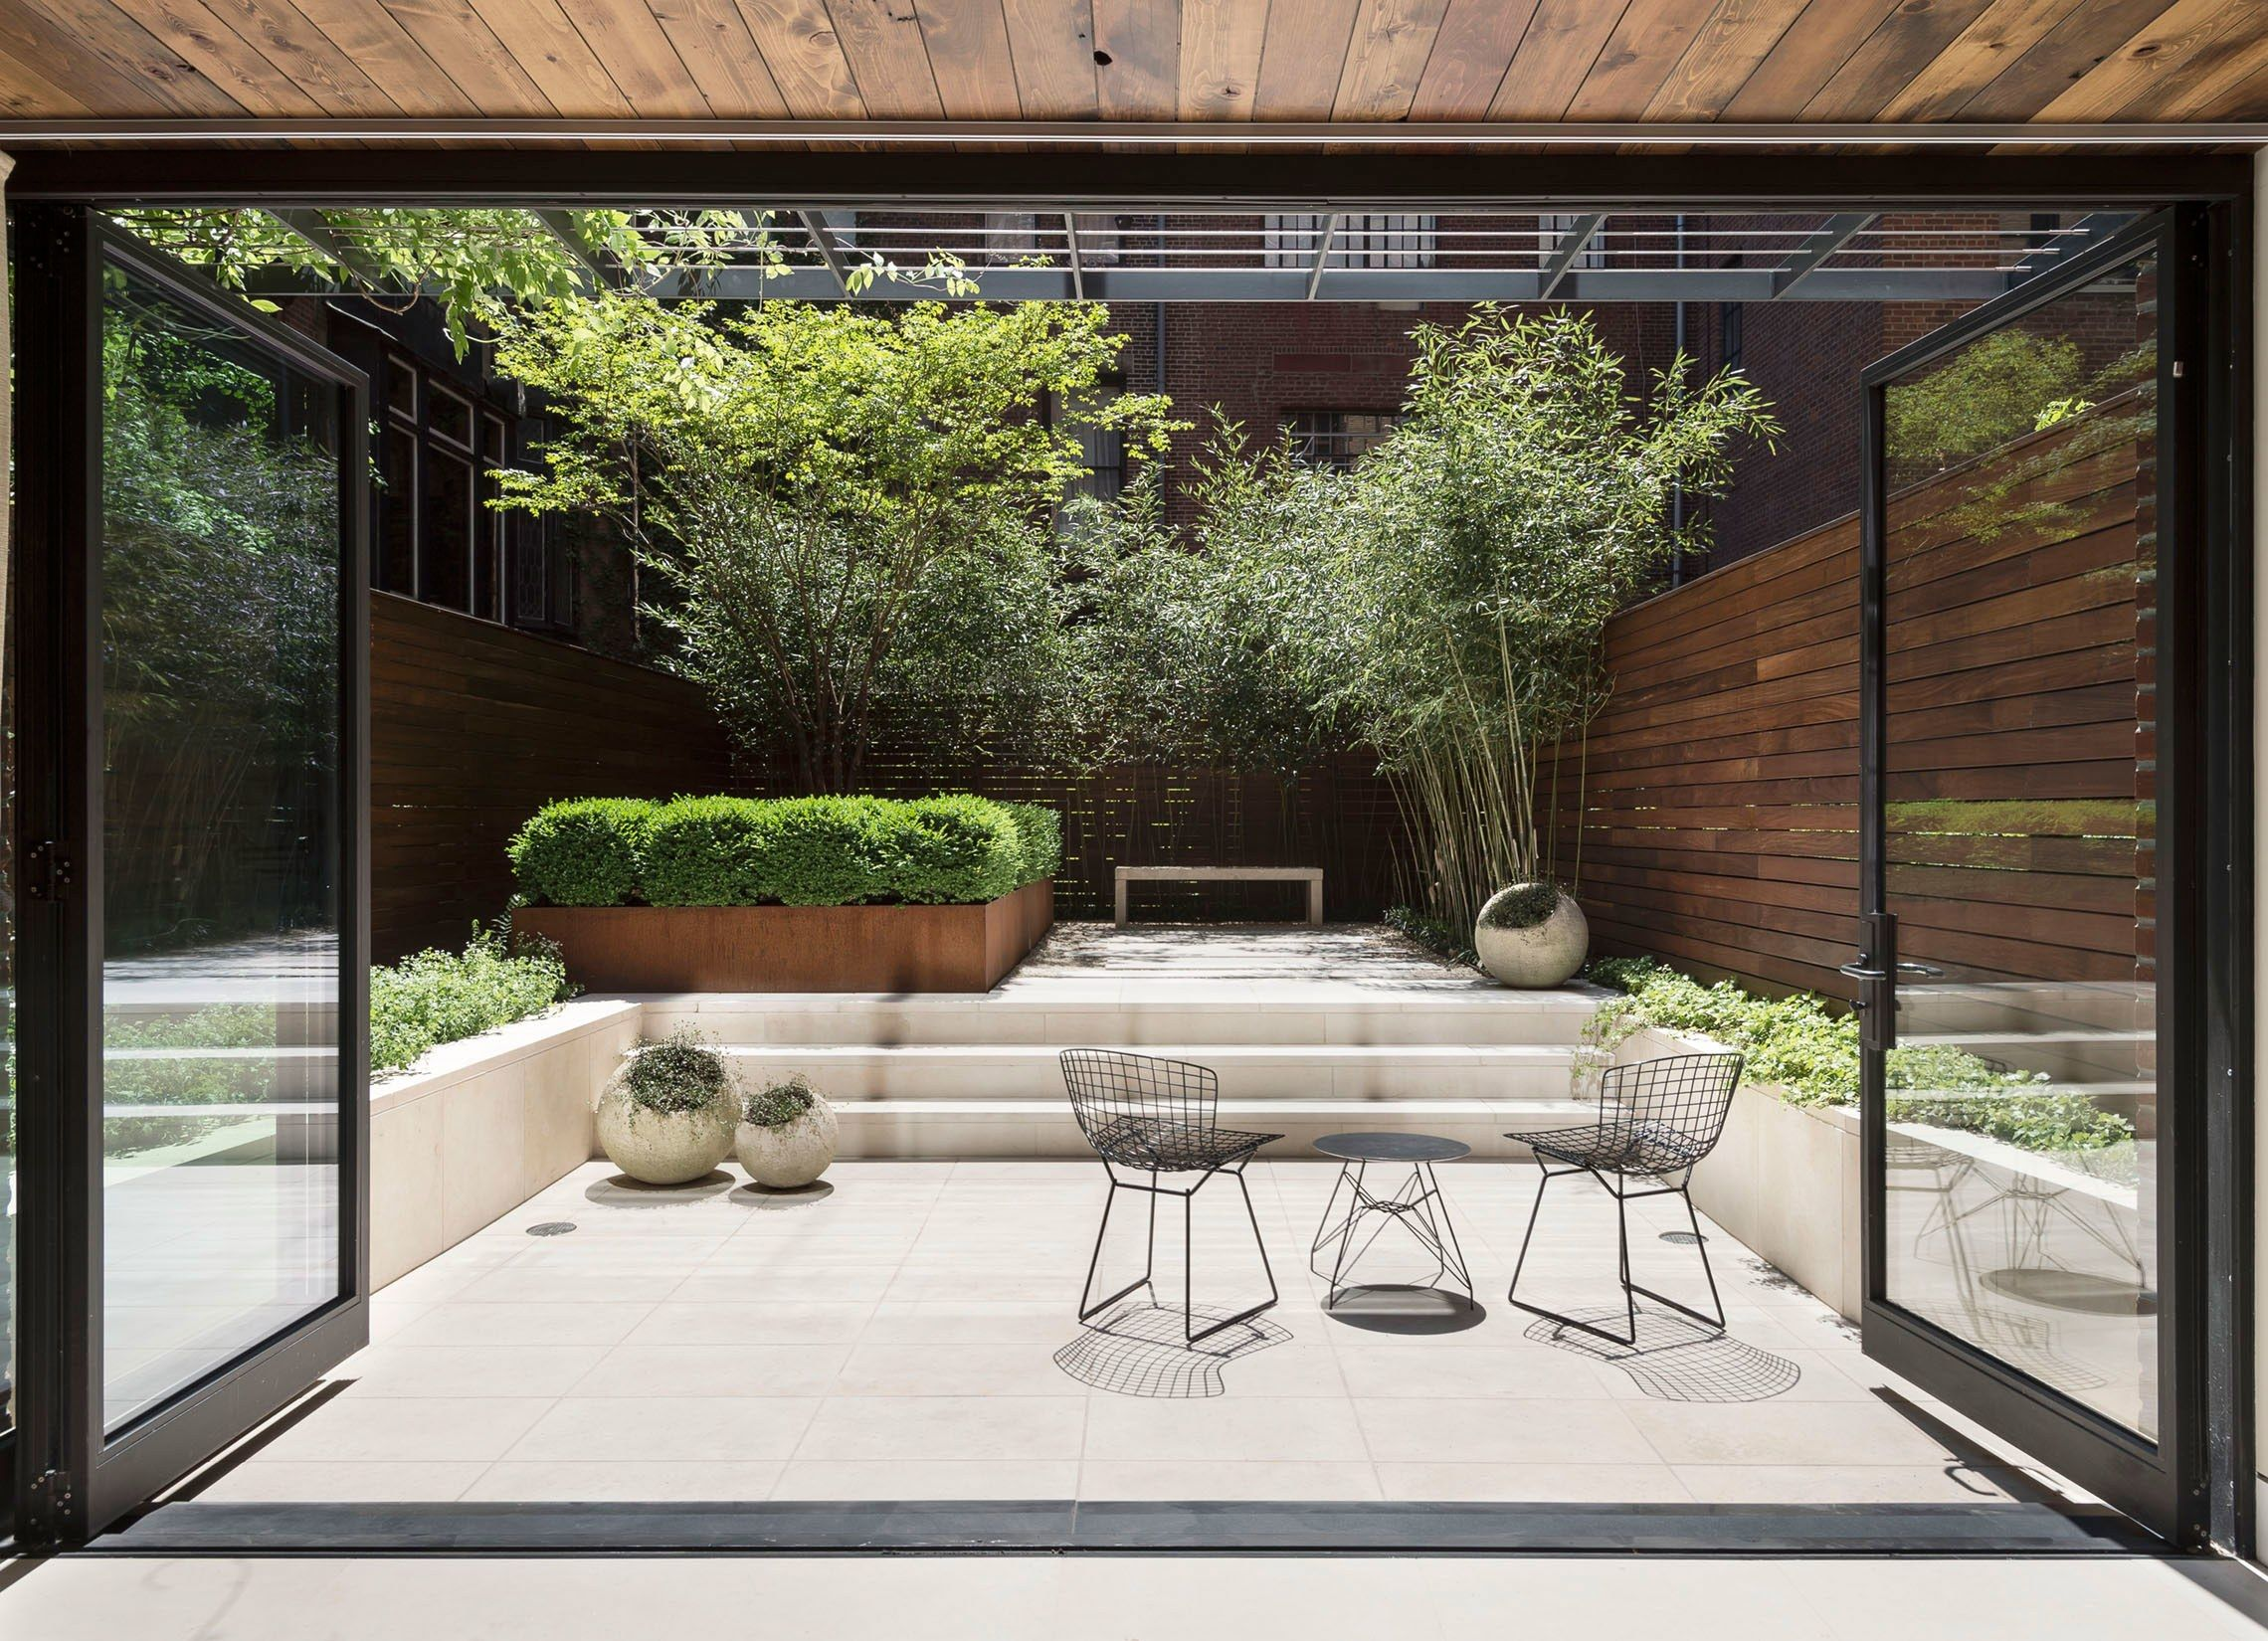 How To Design A Minimalist Garden Patio Courtyard Front Backyard